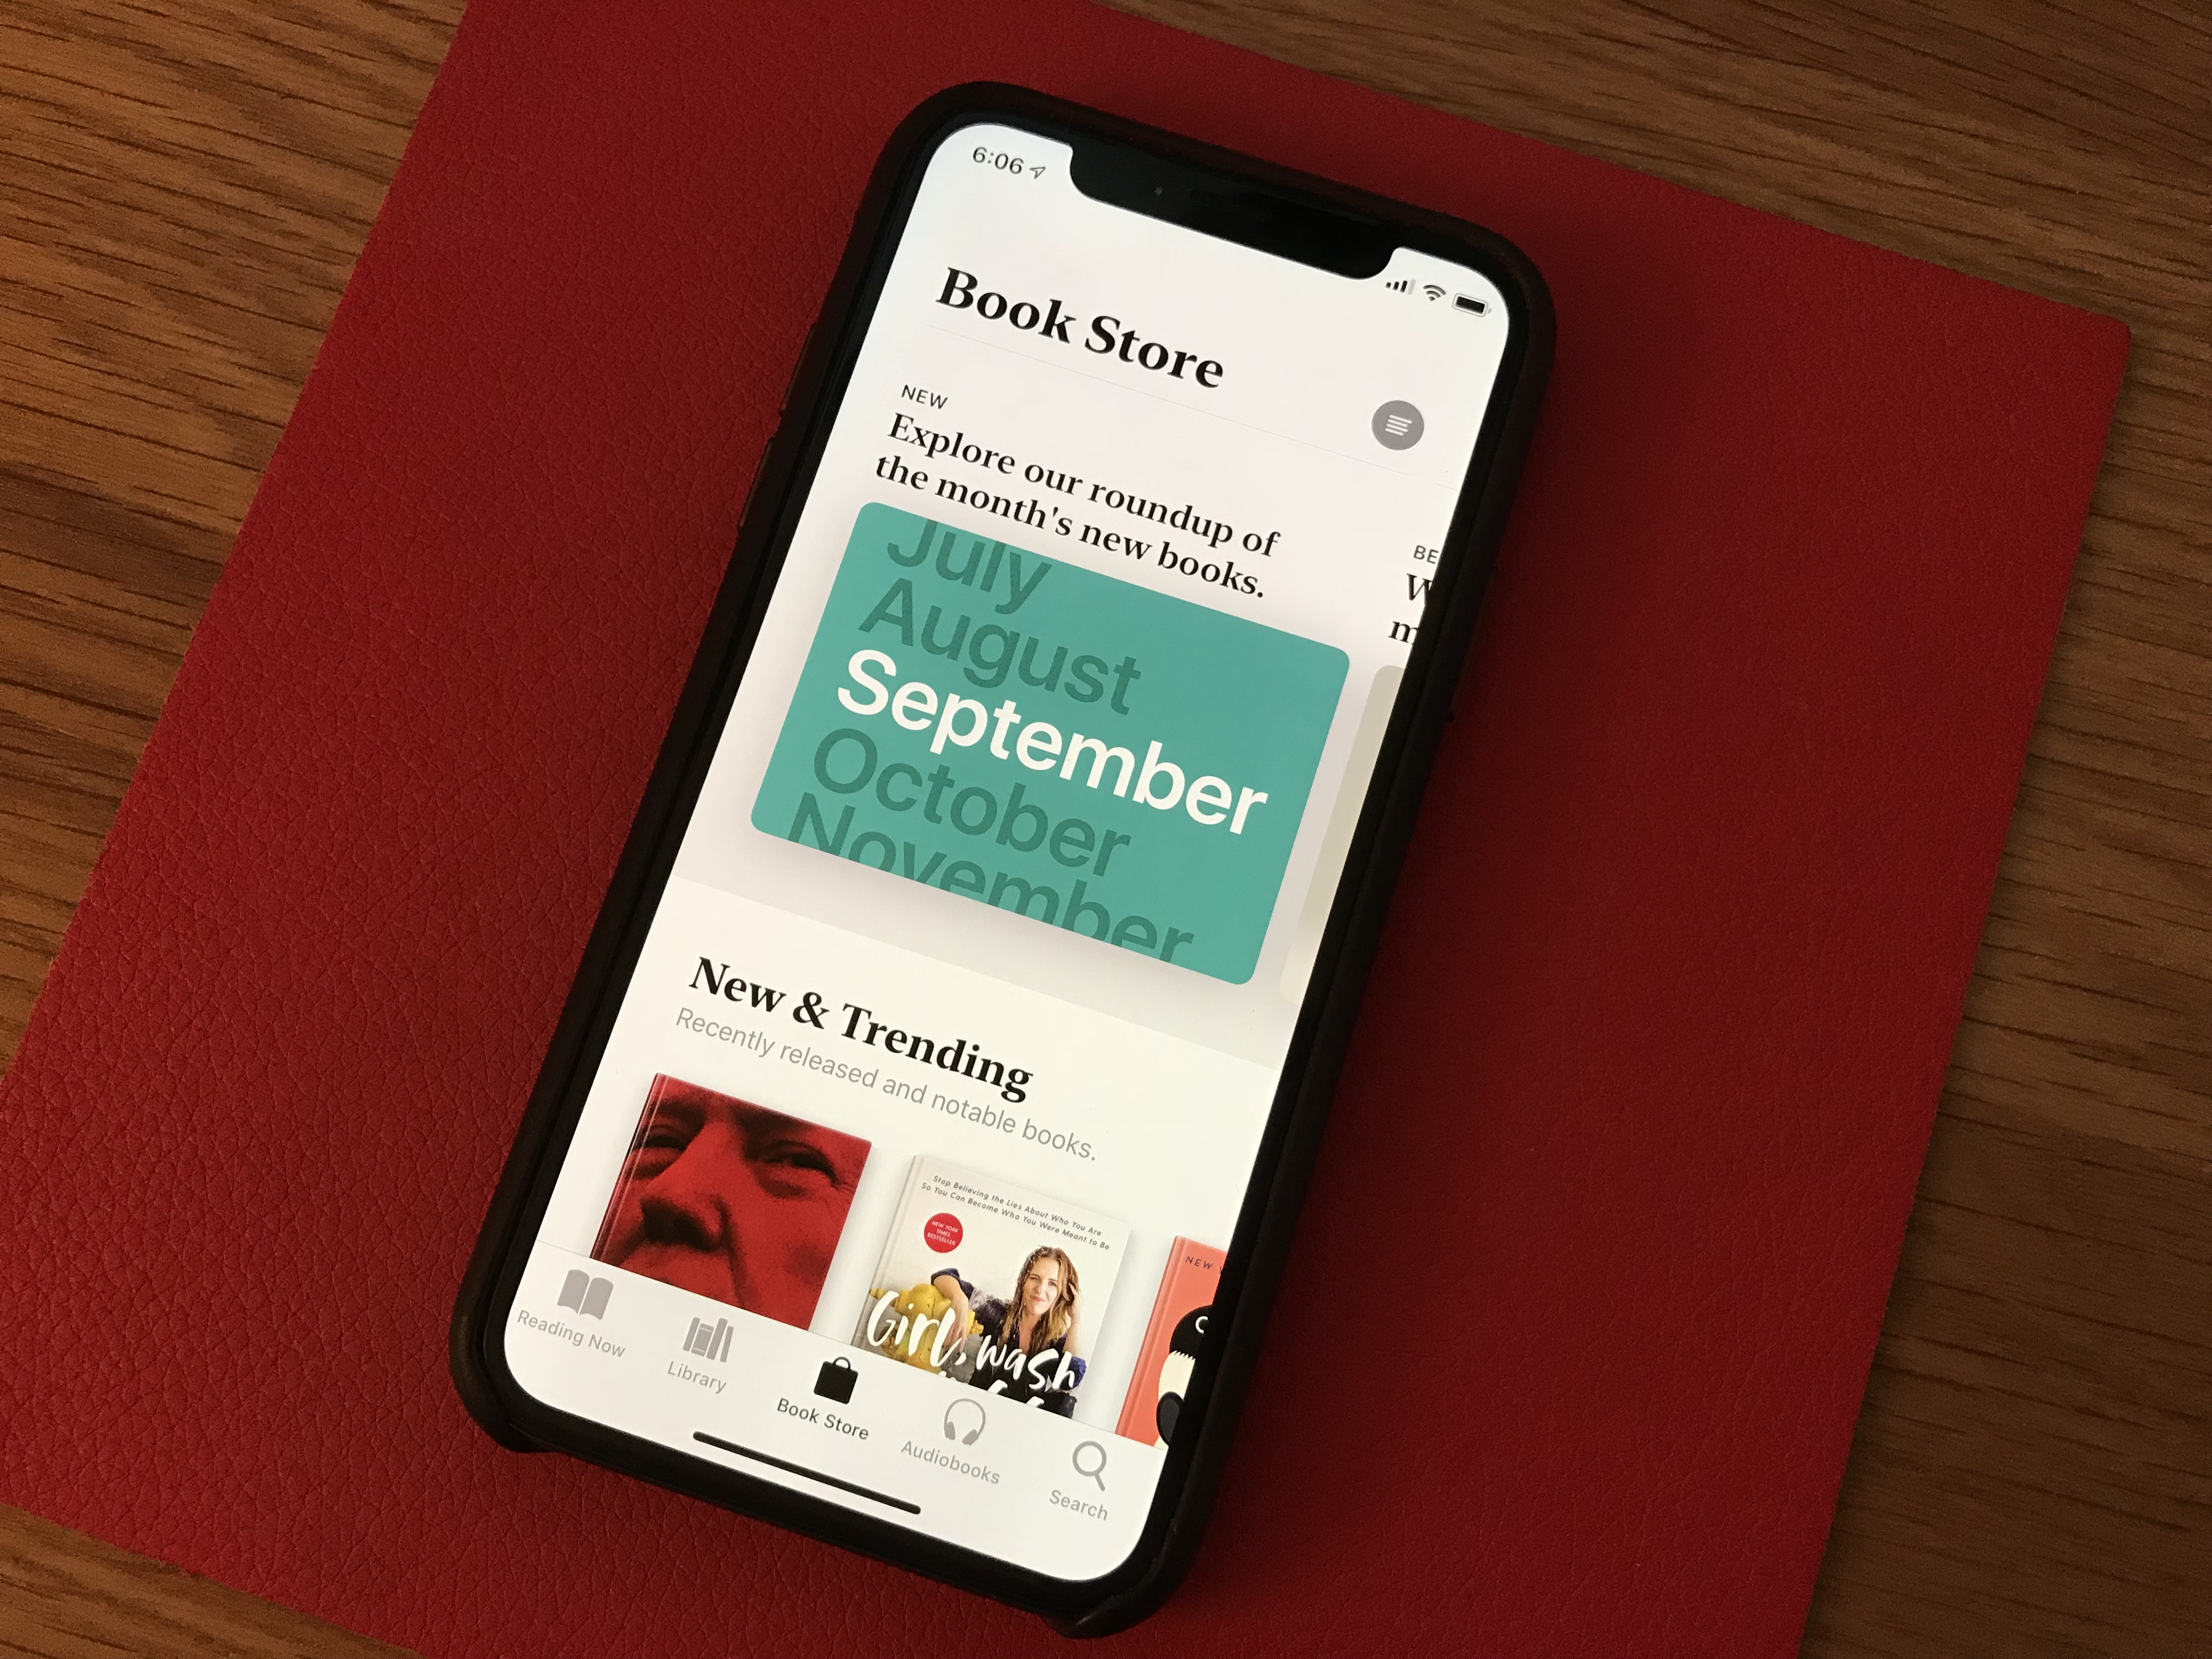 iOS 12 makes your phone faster than ever IMG 0033